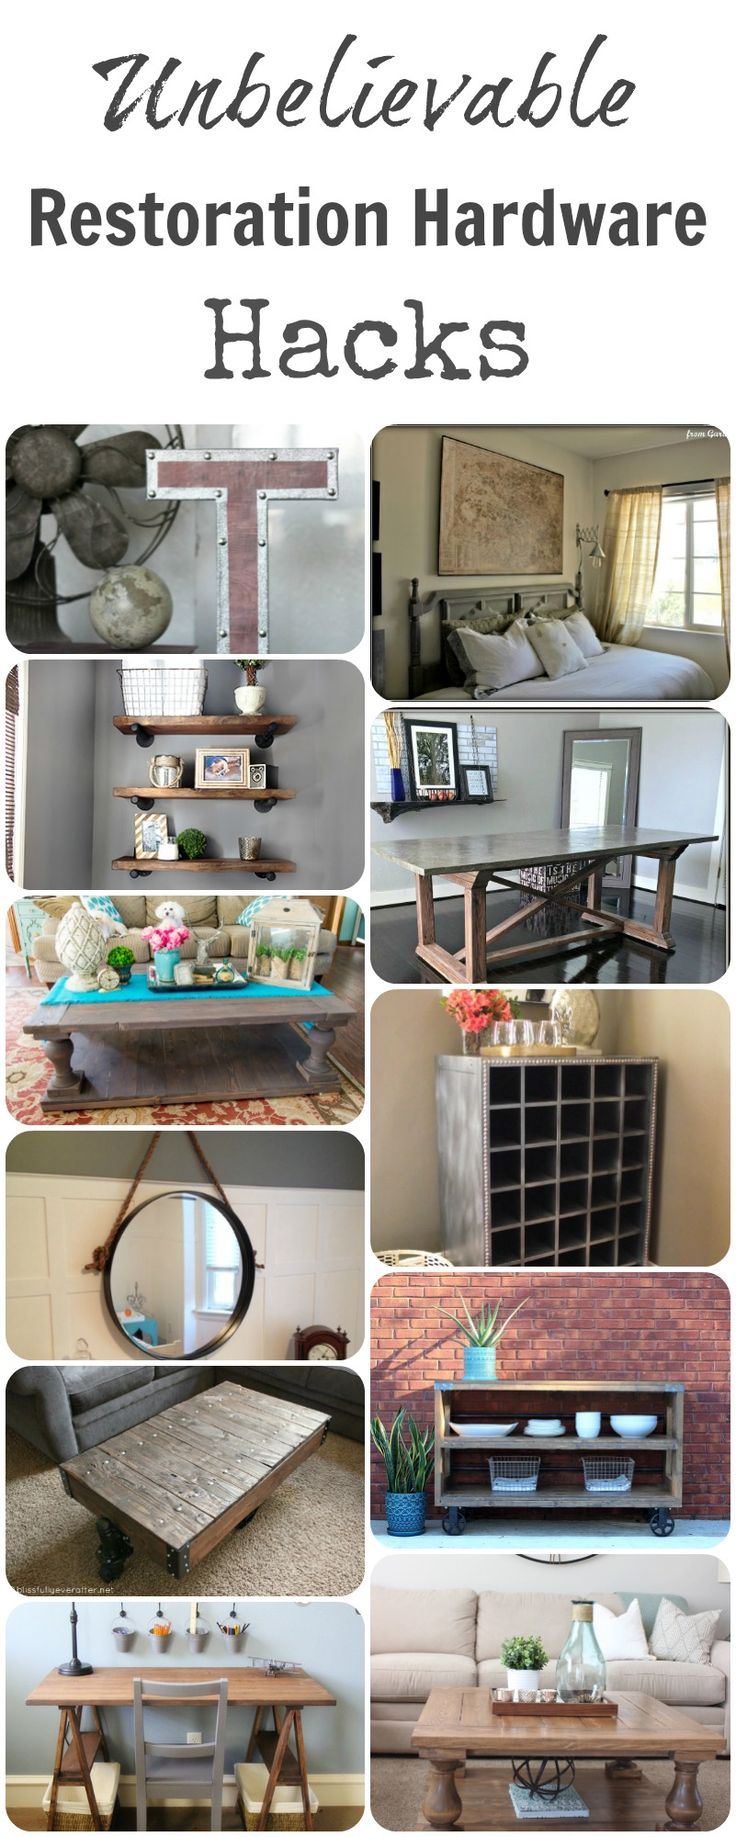 Unbelievable+Restoration+Hardware+Hacks